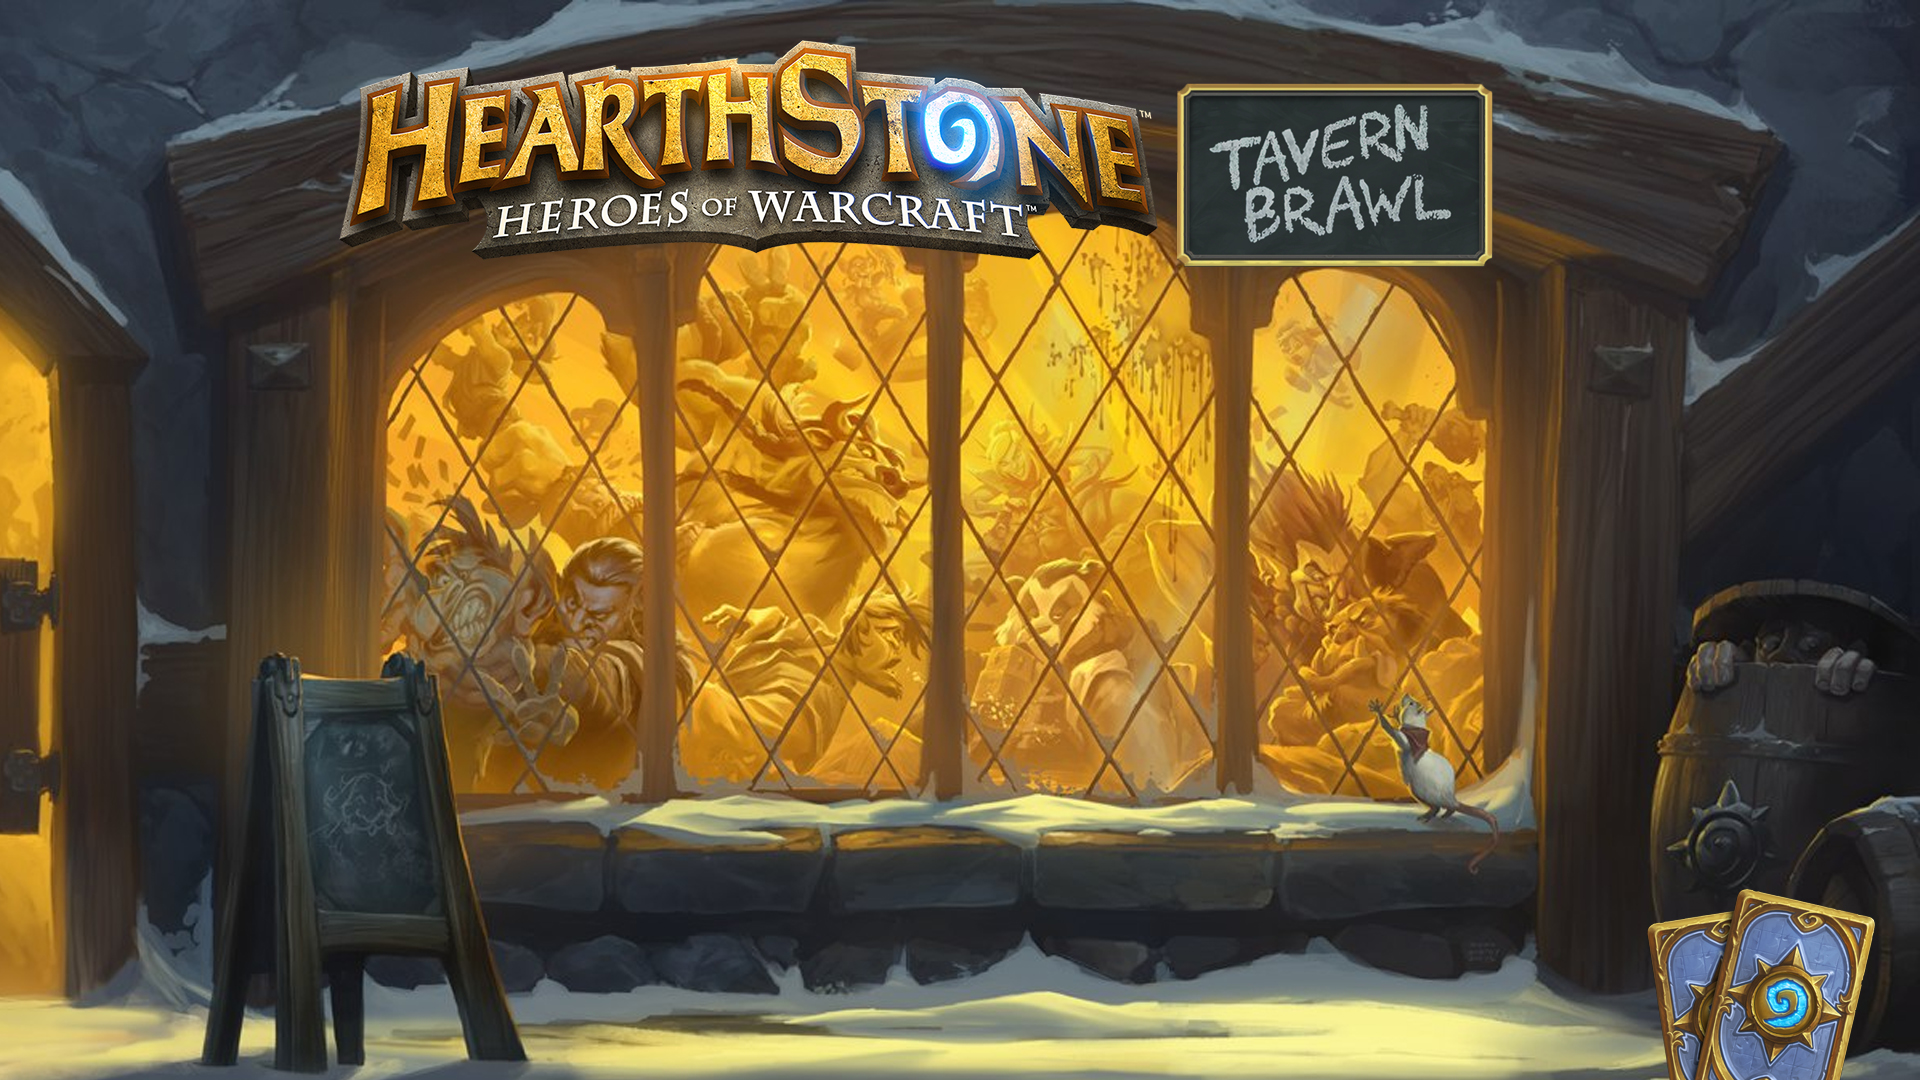 14.00 - Start Hearthstone Tavern Brawl